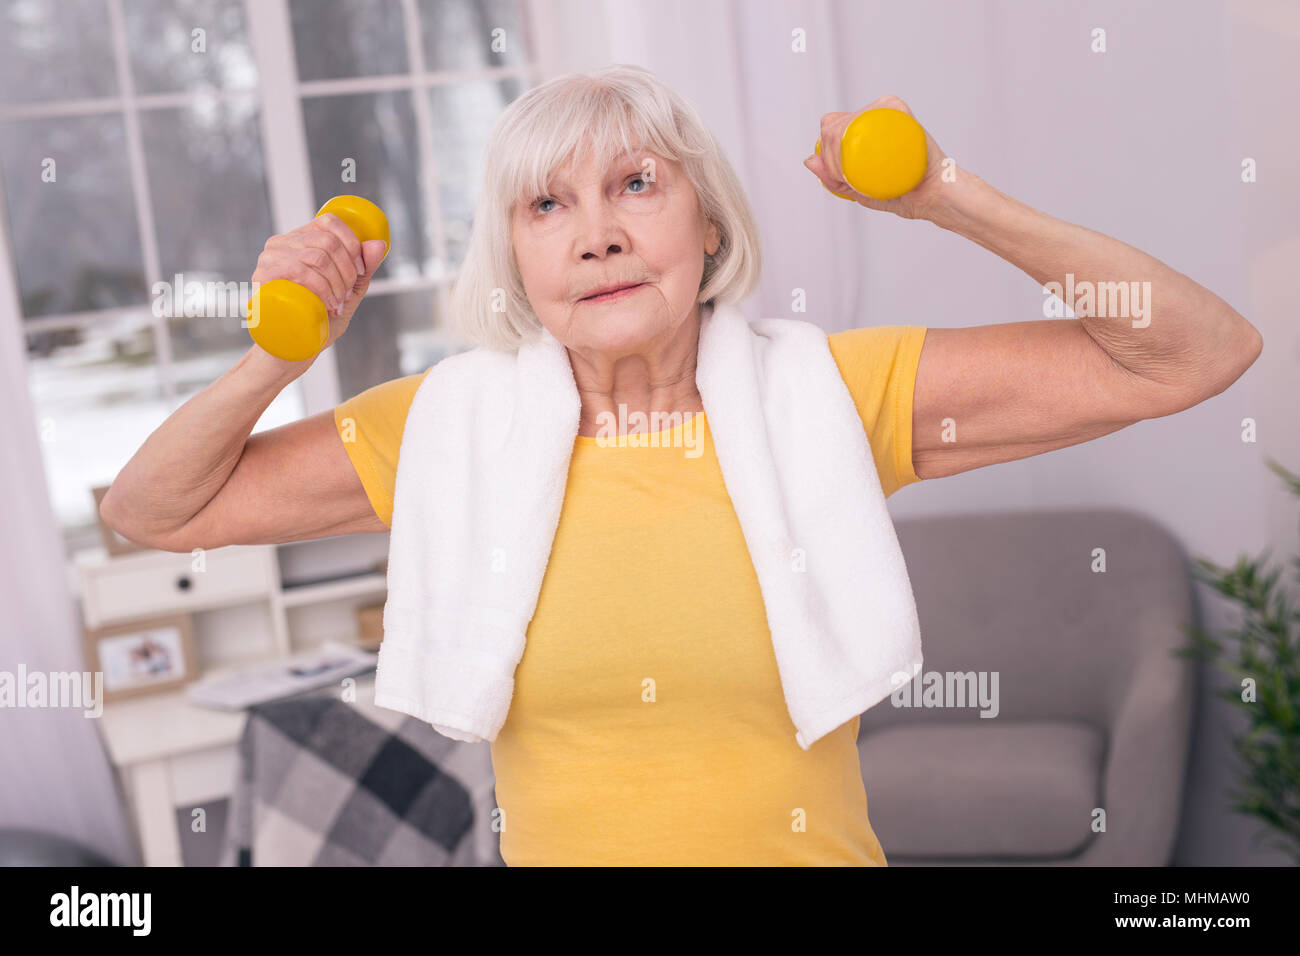 Elderly woman being tired of exercising with dumbbells - Stock Image